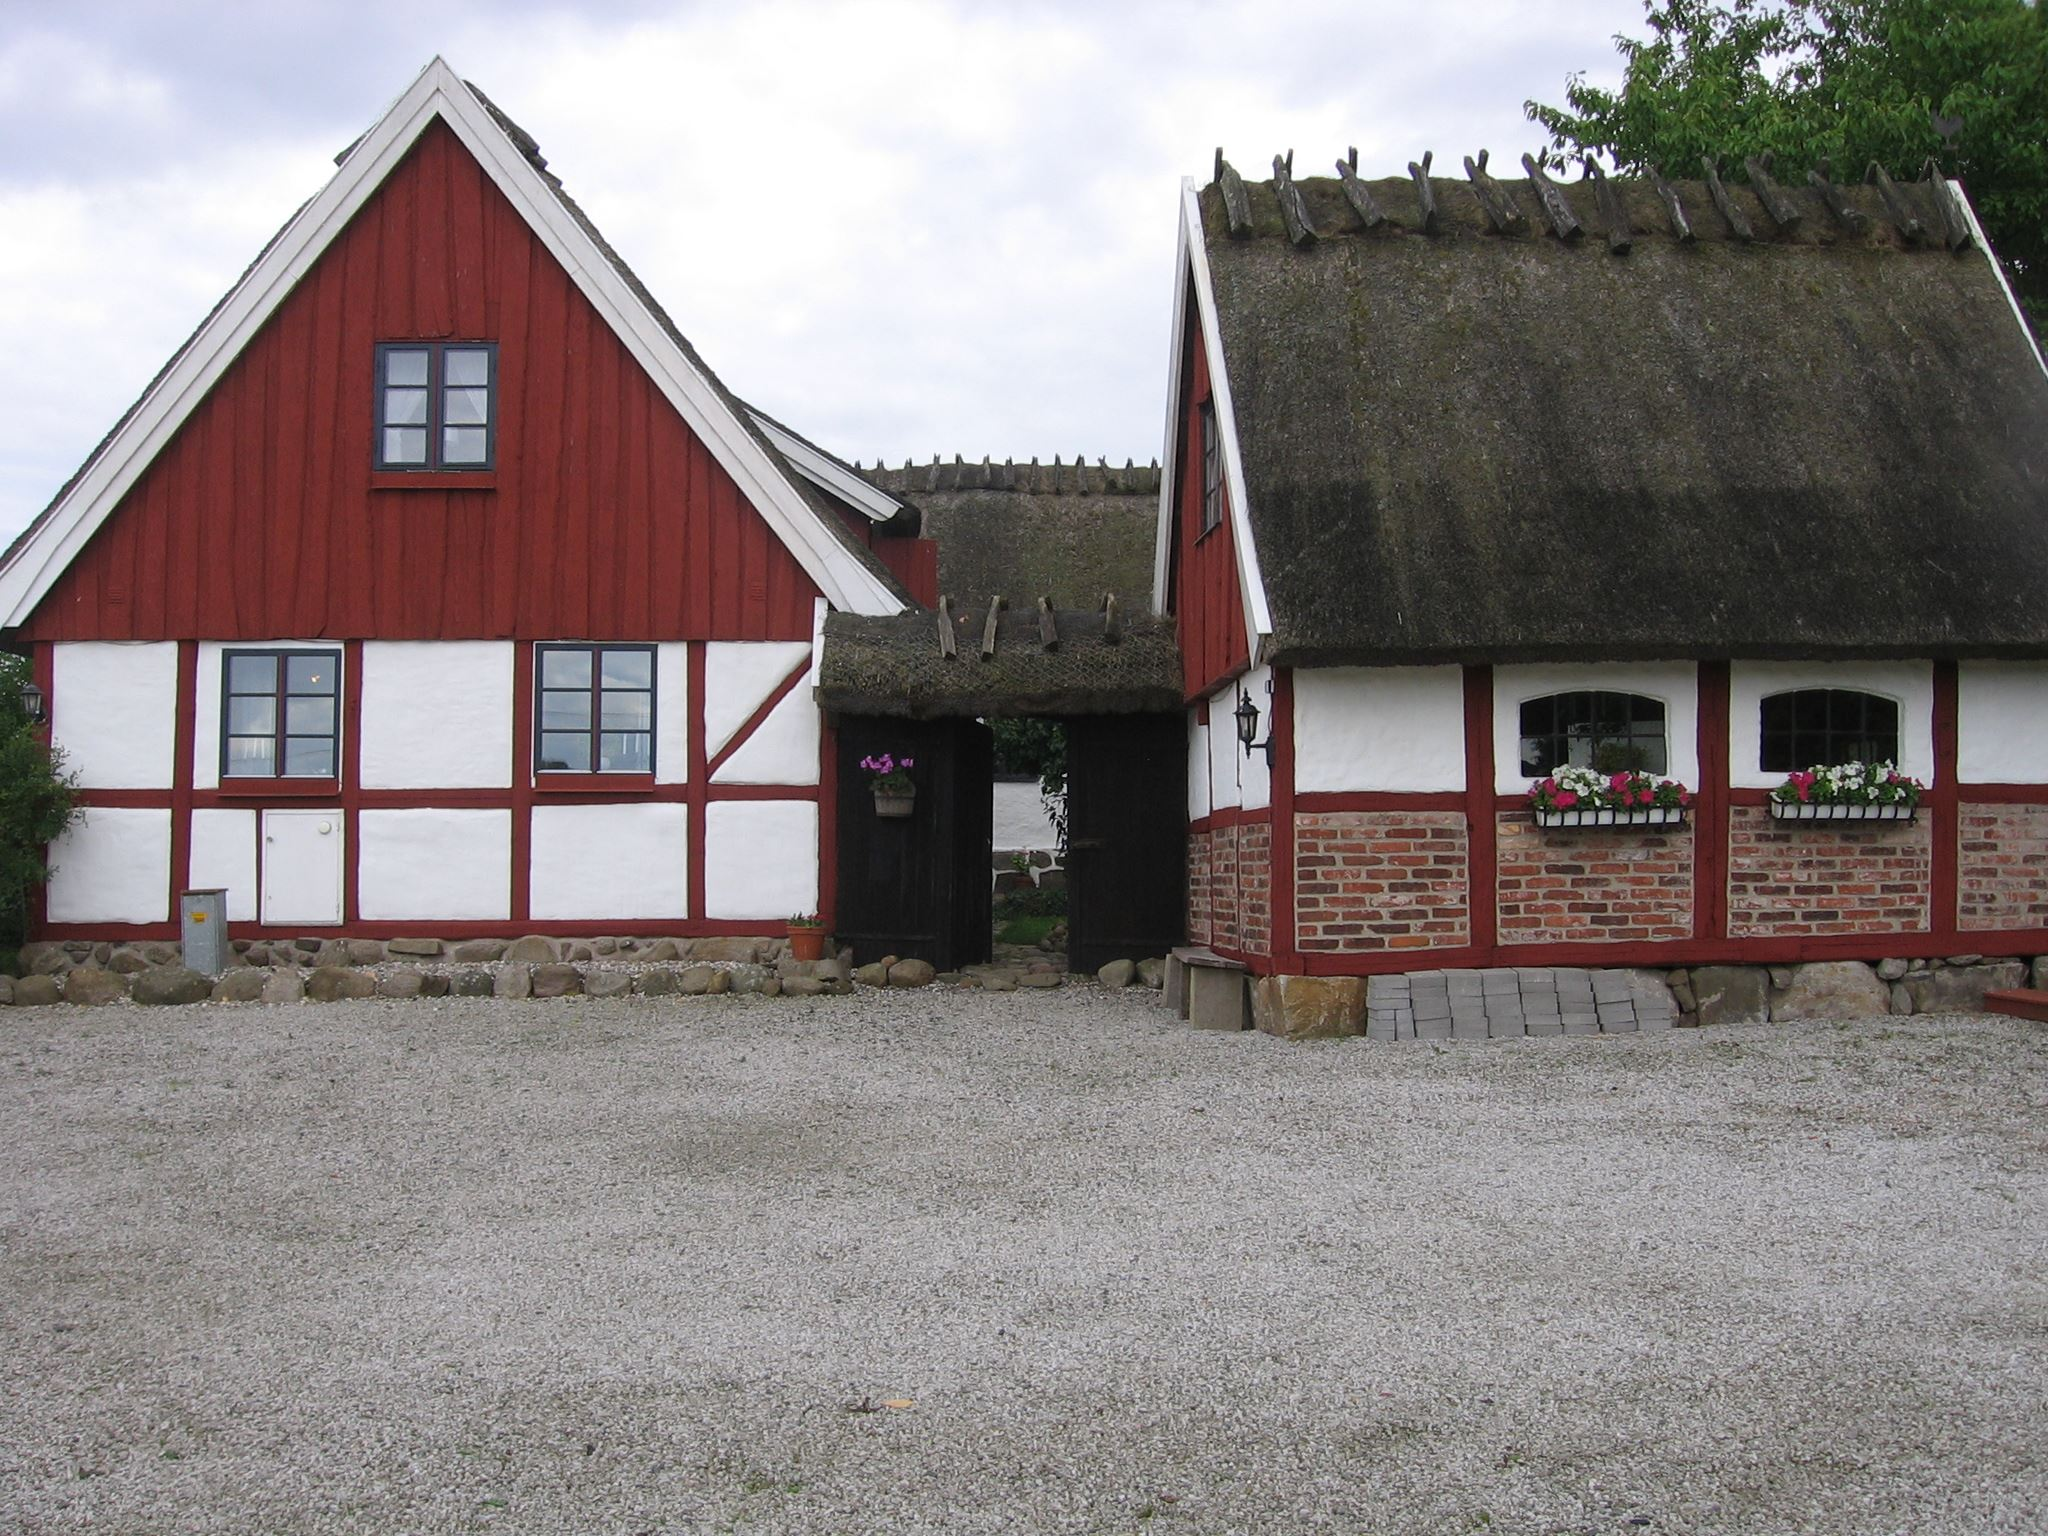 Café at Hannåsa Gård